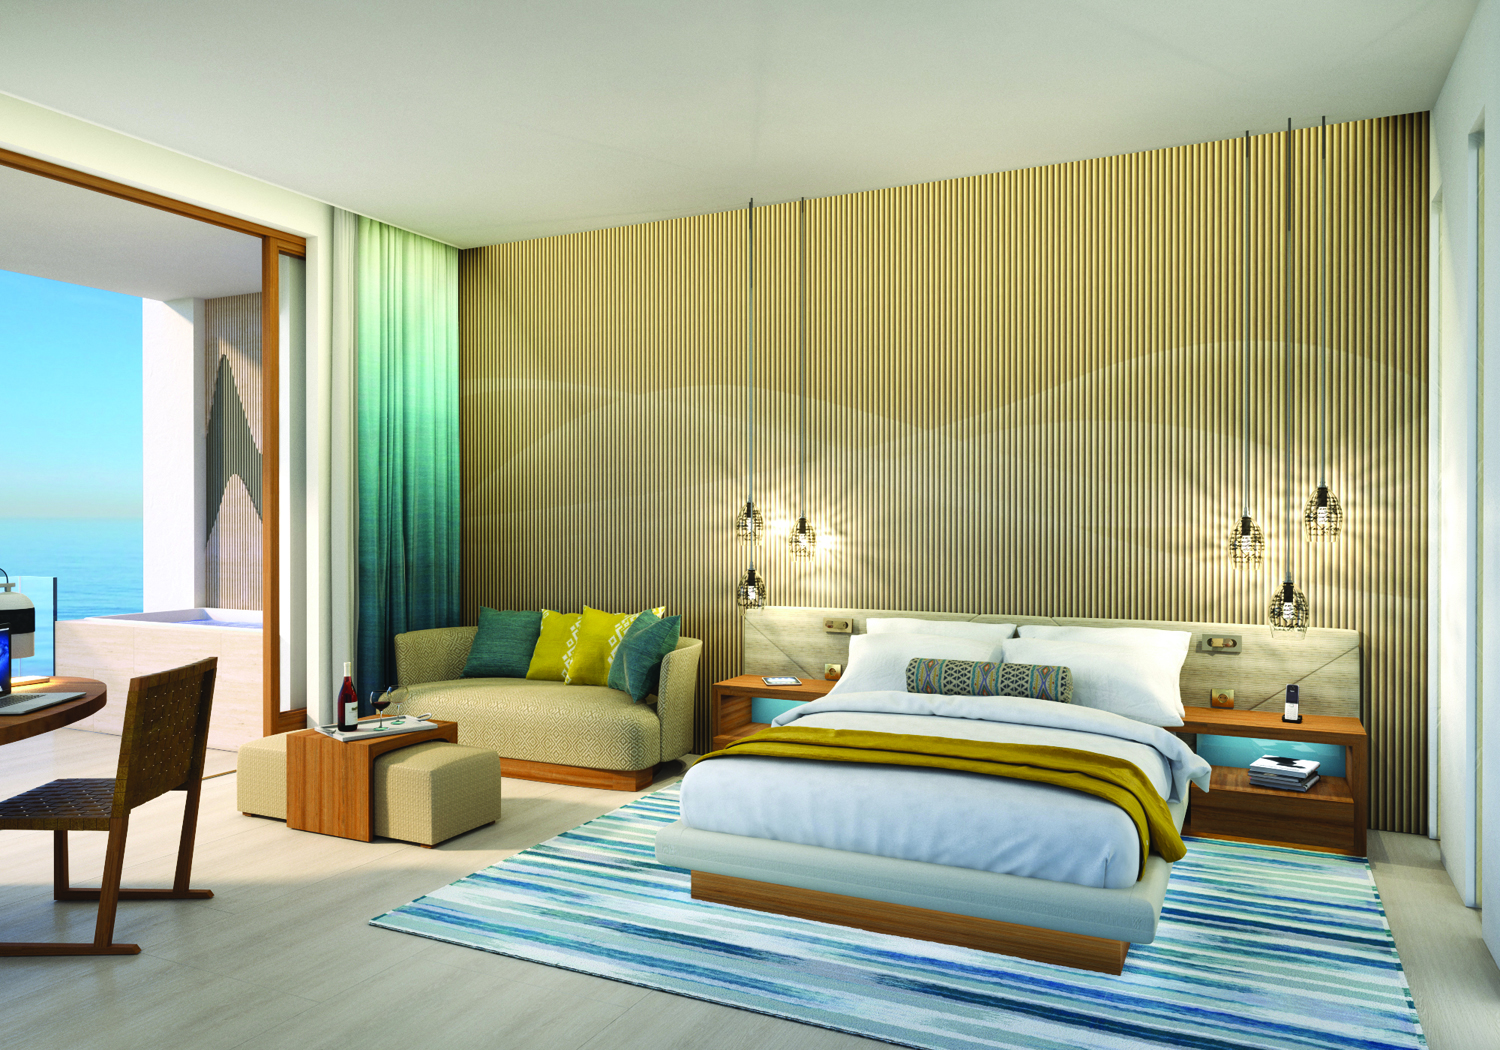 Rendering of accommodations at Hard Rock Hotel Los Cabos.